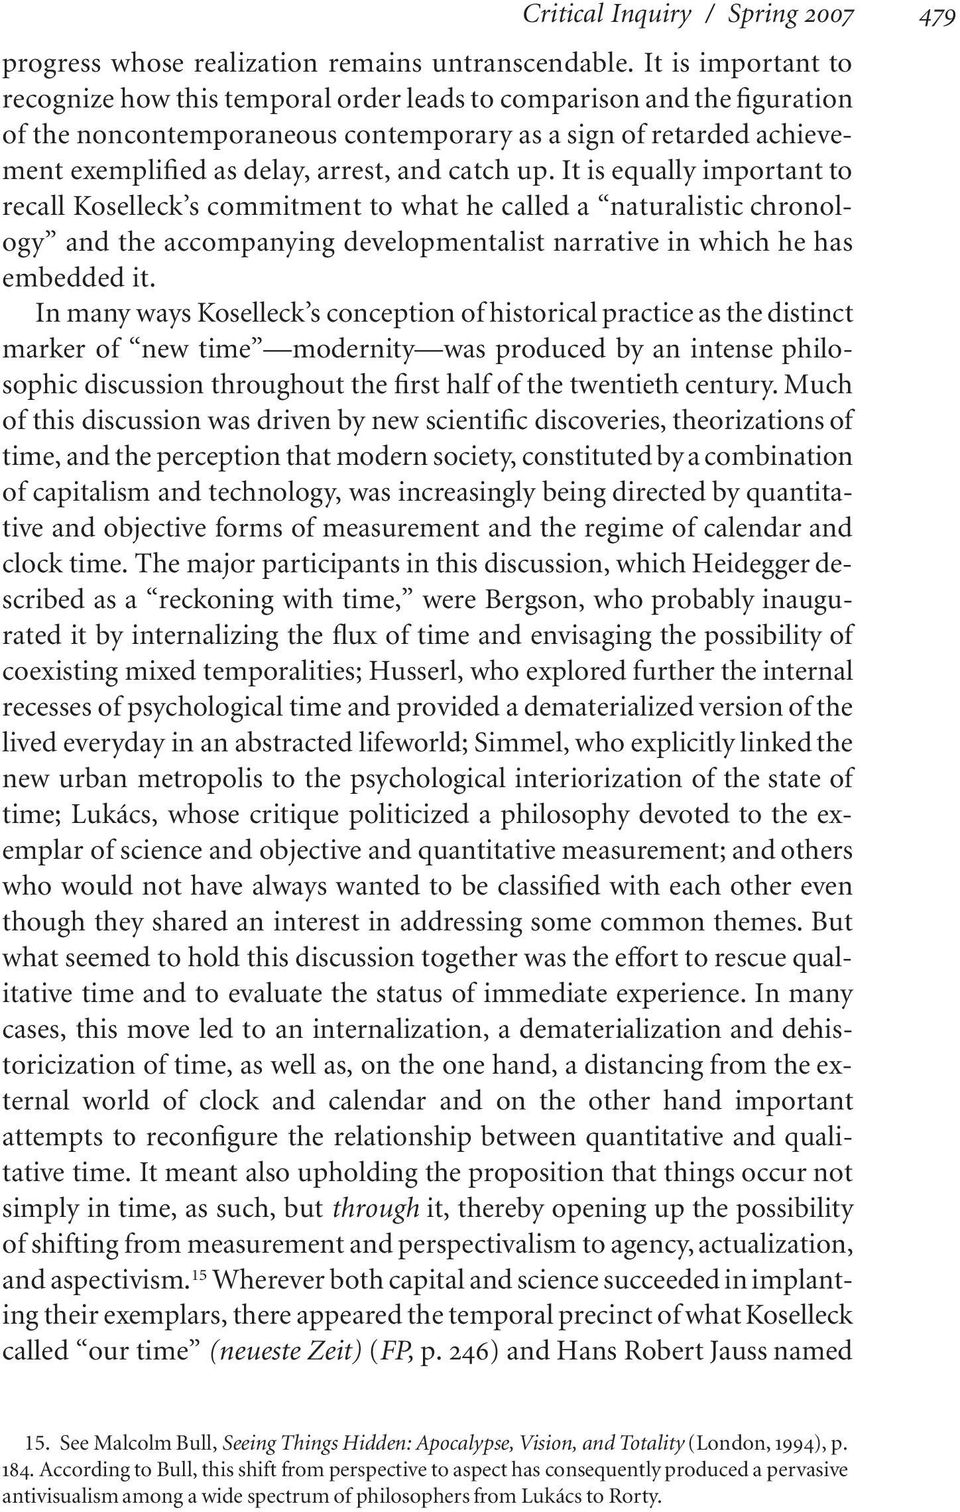 catch up. It is equally important to recall Koselleck s commitment to what he called a naturalistic chronology and the accompanying developmentalist narrative in which he has embedded it.